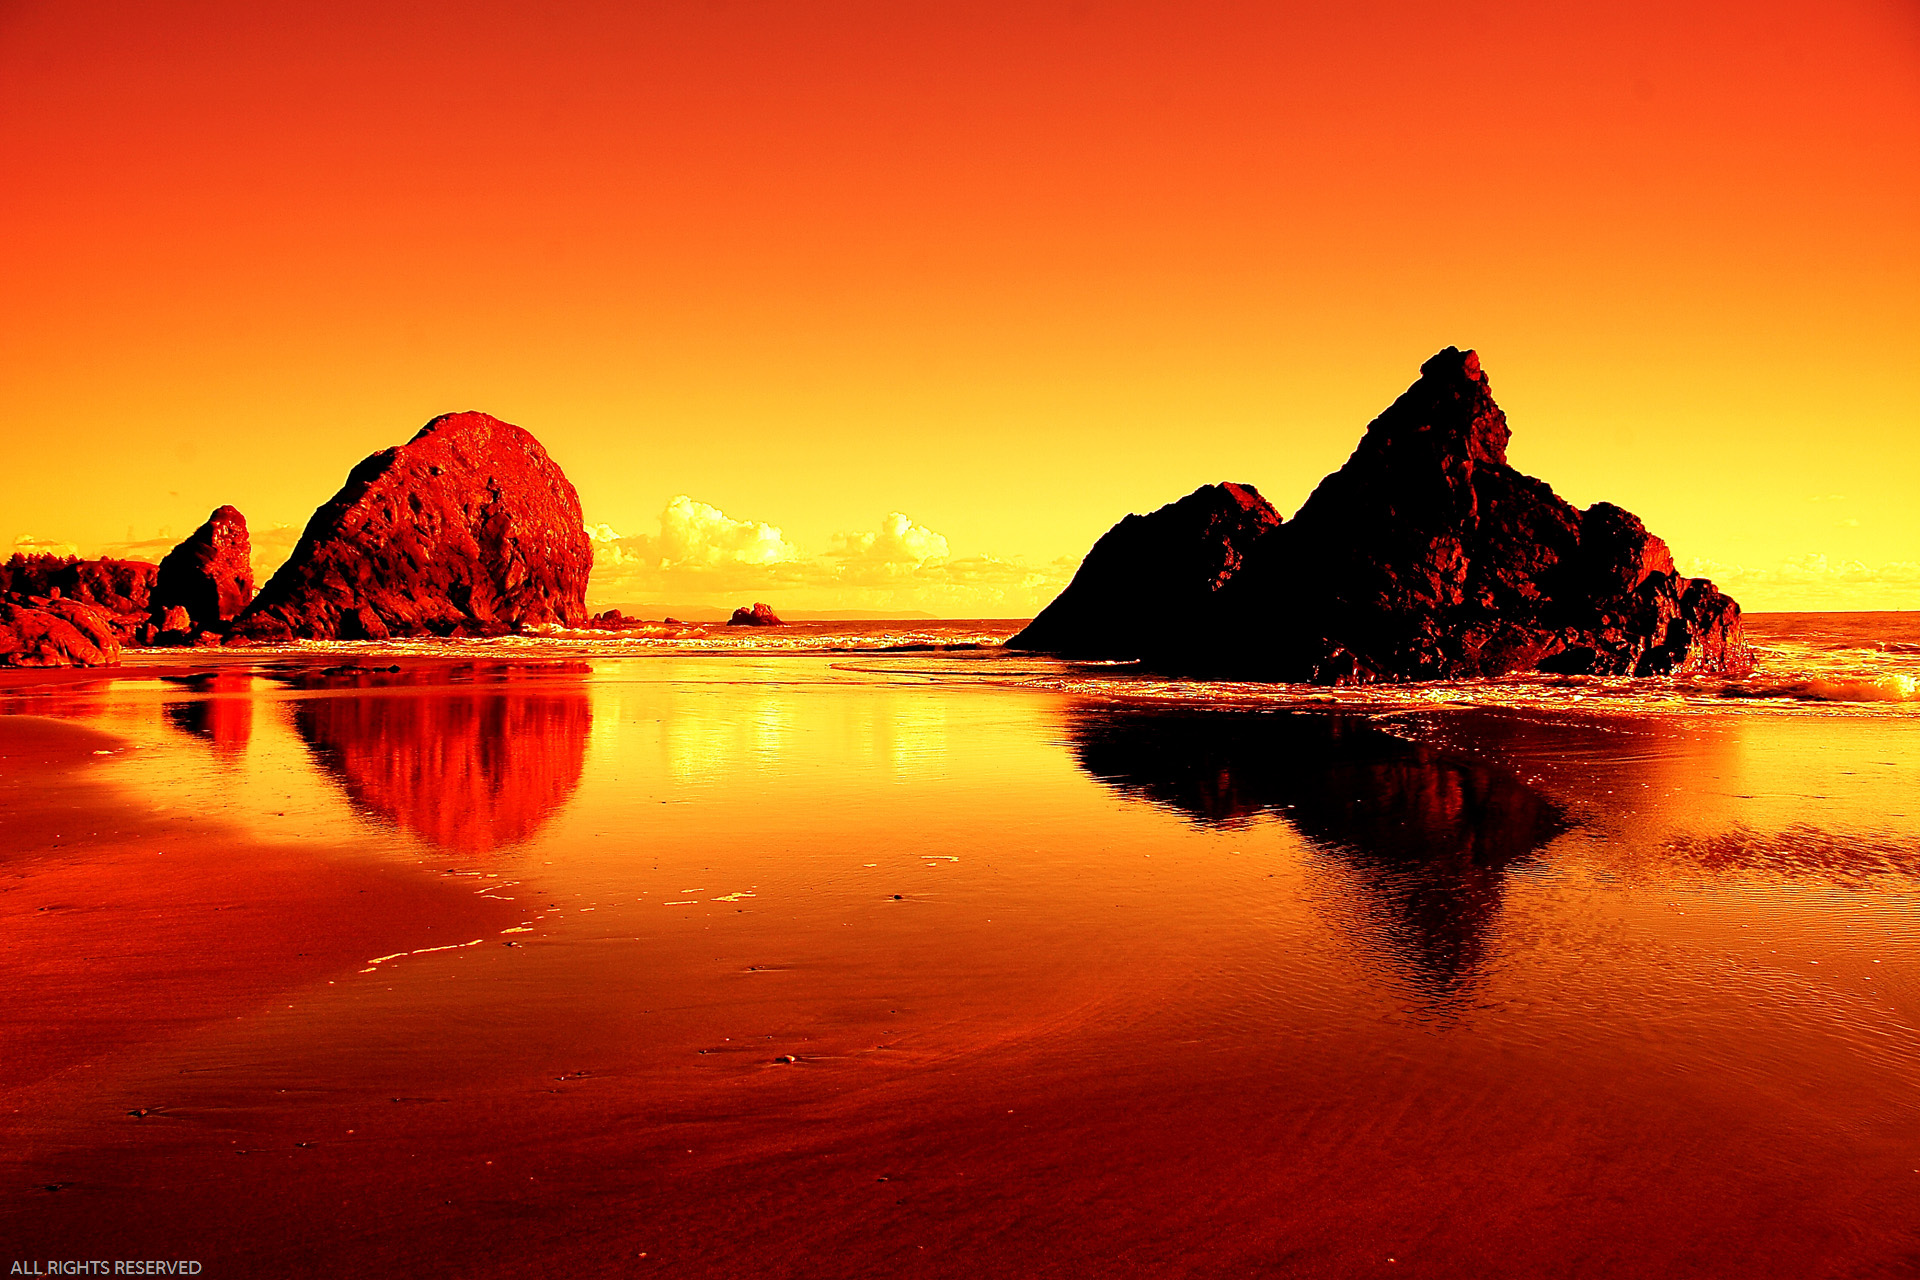 Most beautiful sunset wallpapers wallpapersafari for Paesaggi bellissimi per desktop